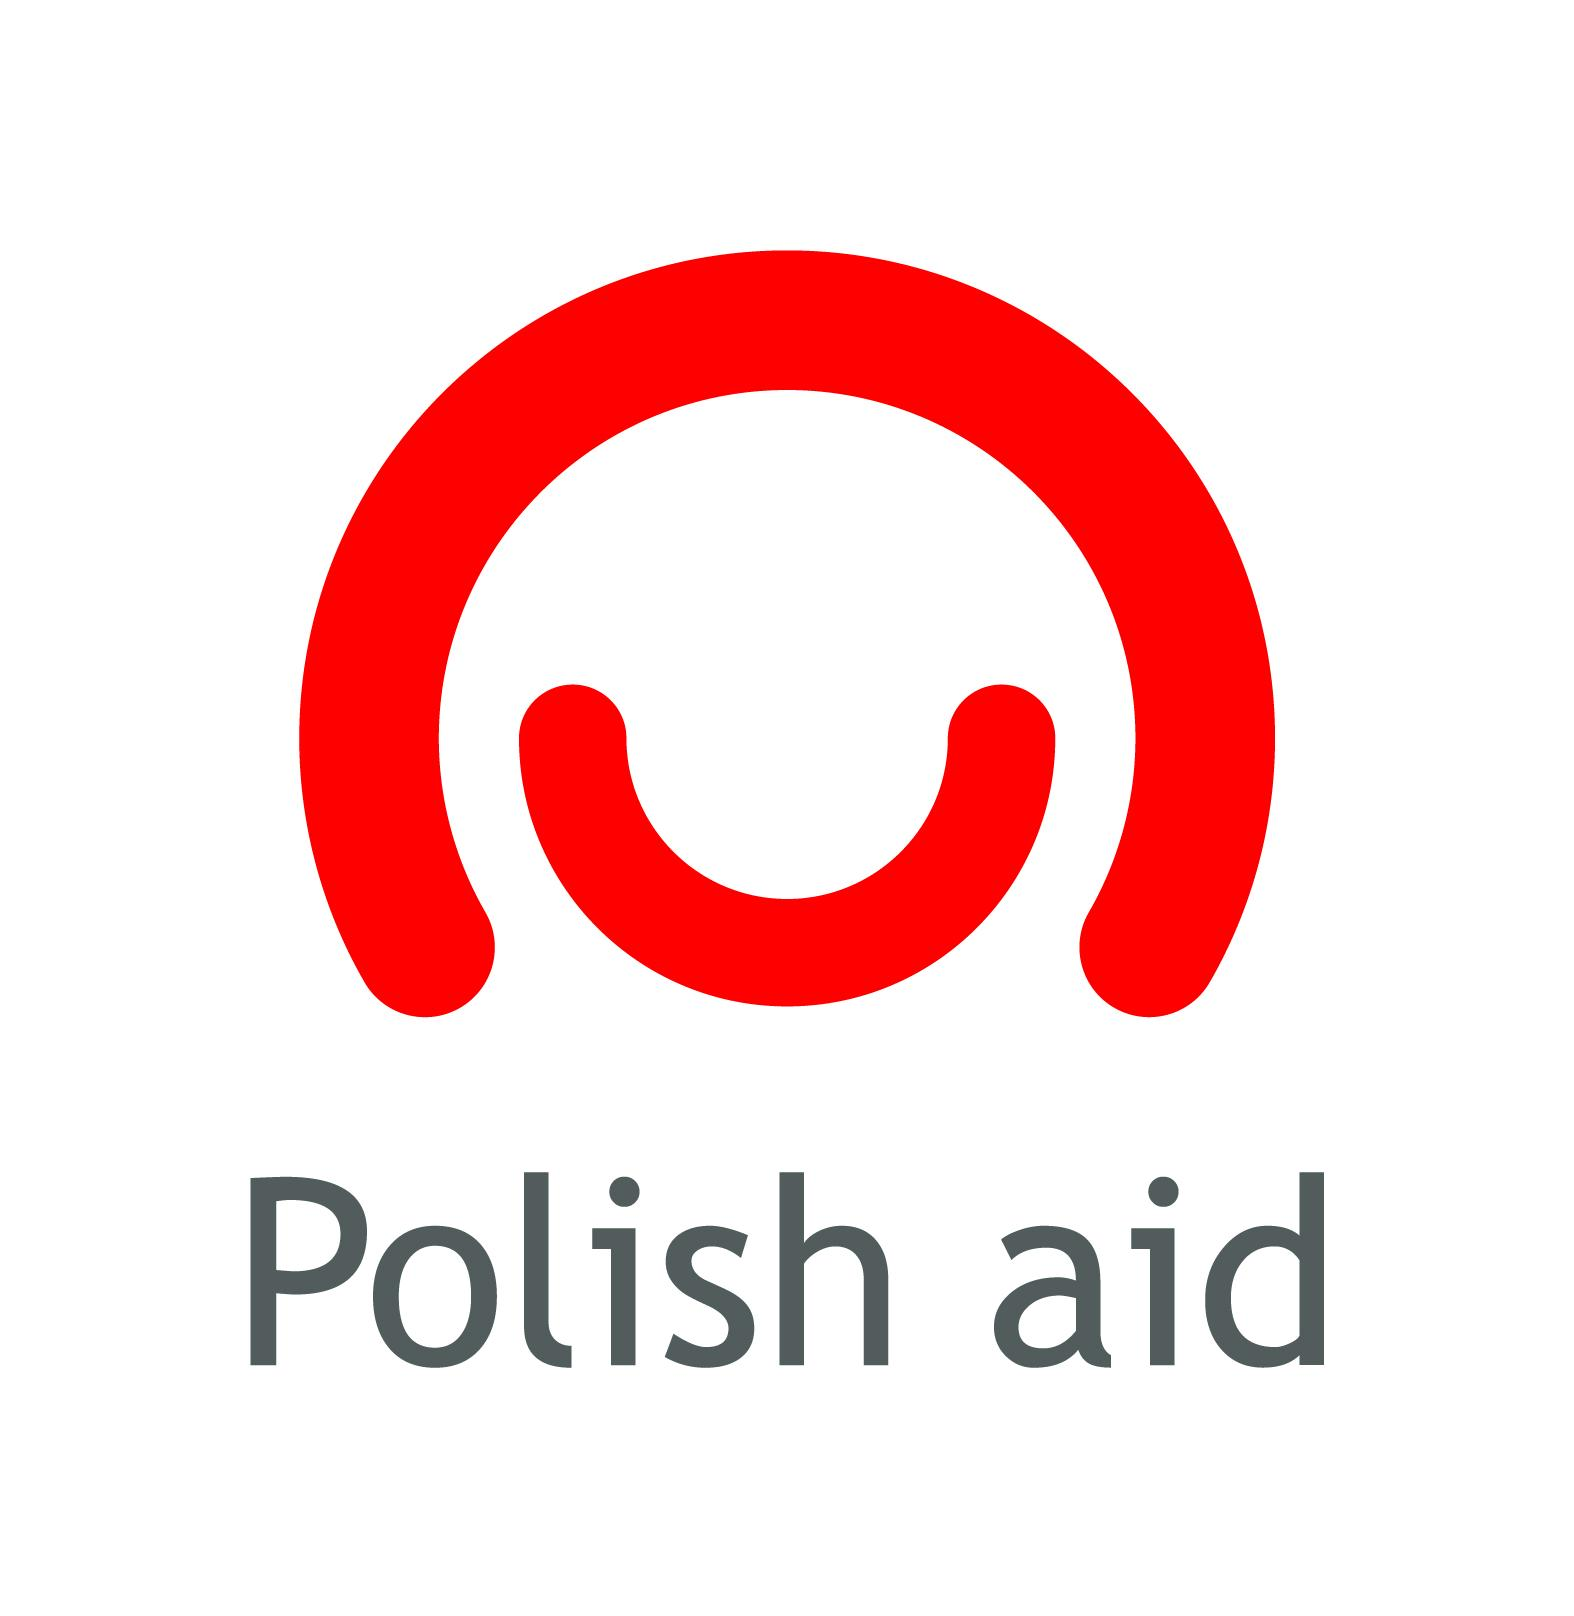 polishaid-logo